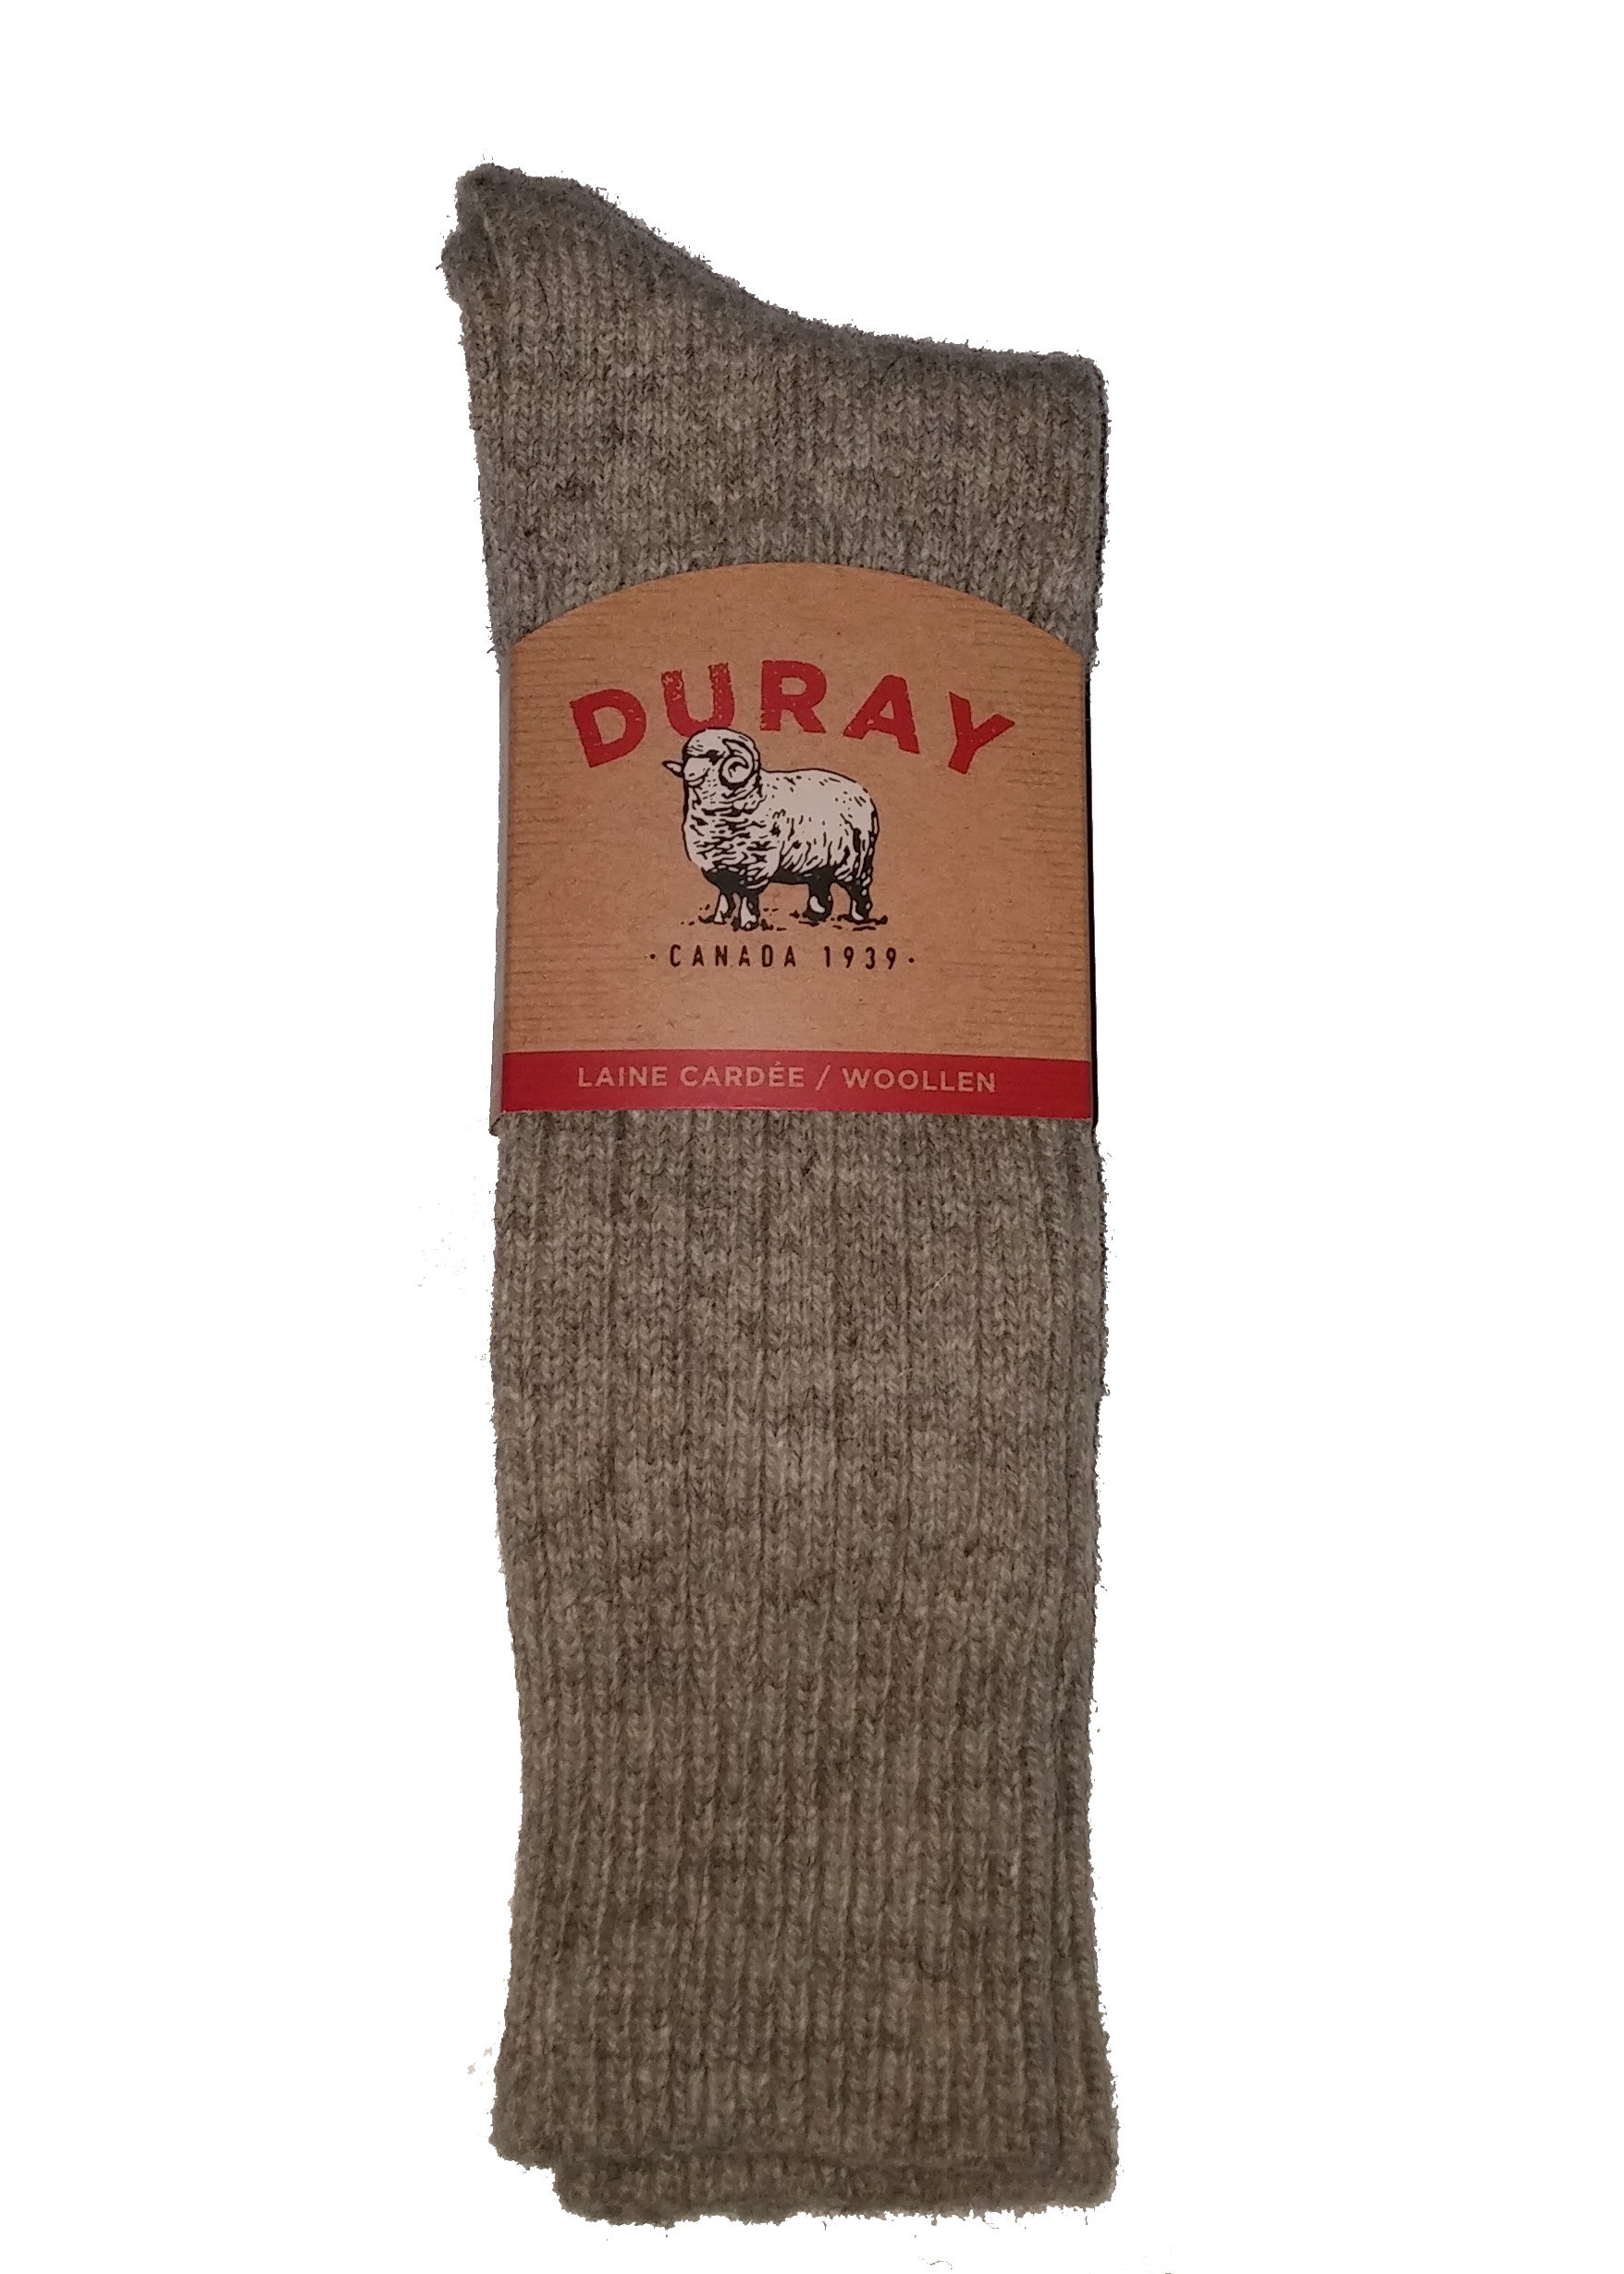 Duray military socks